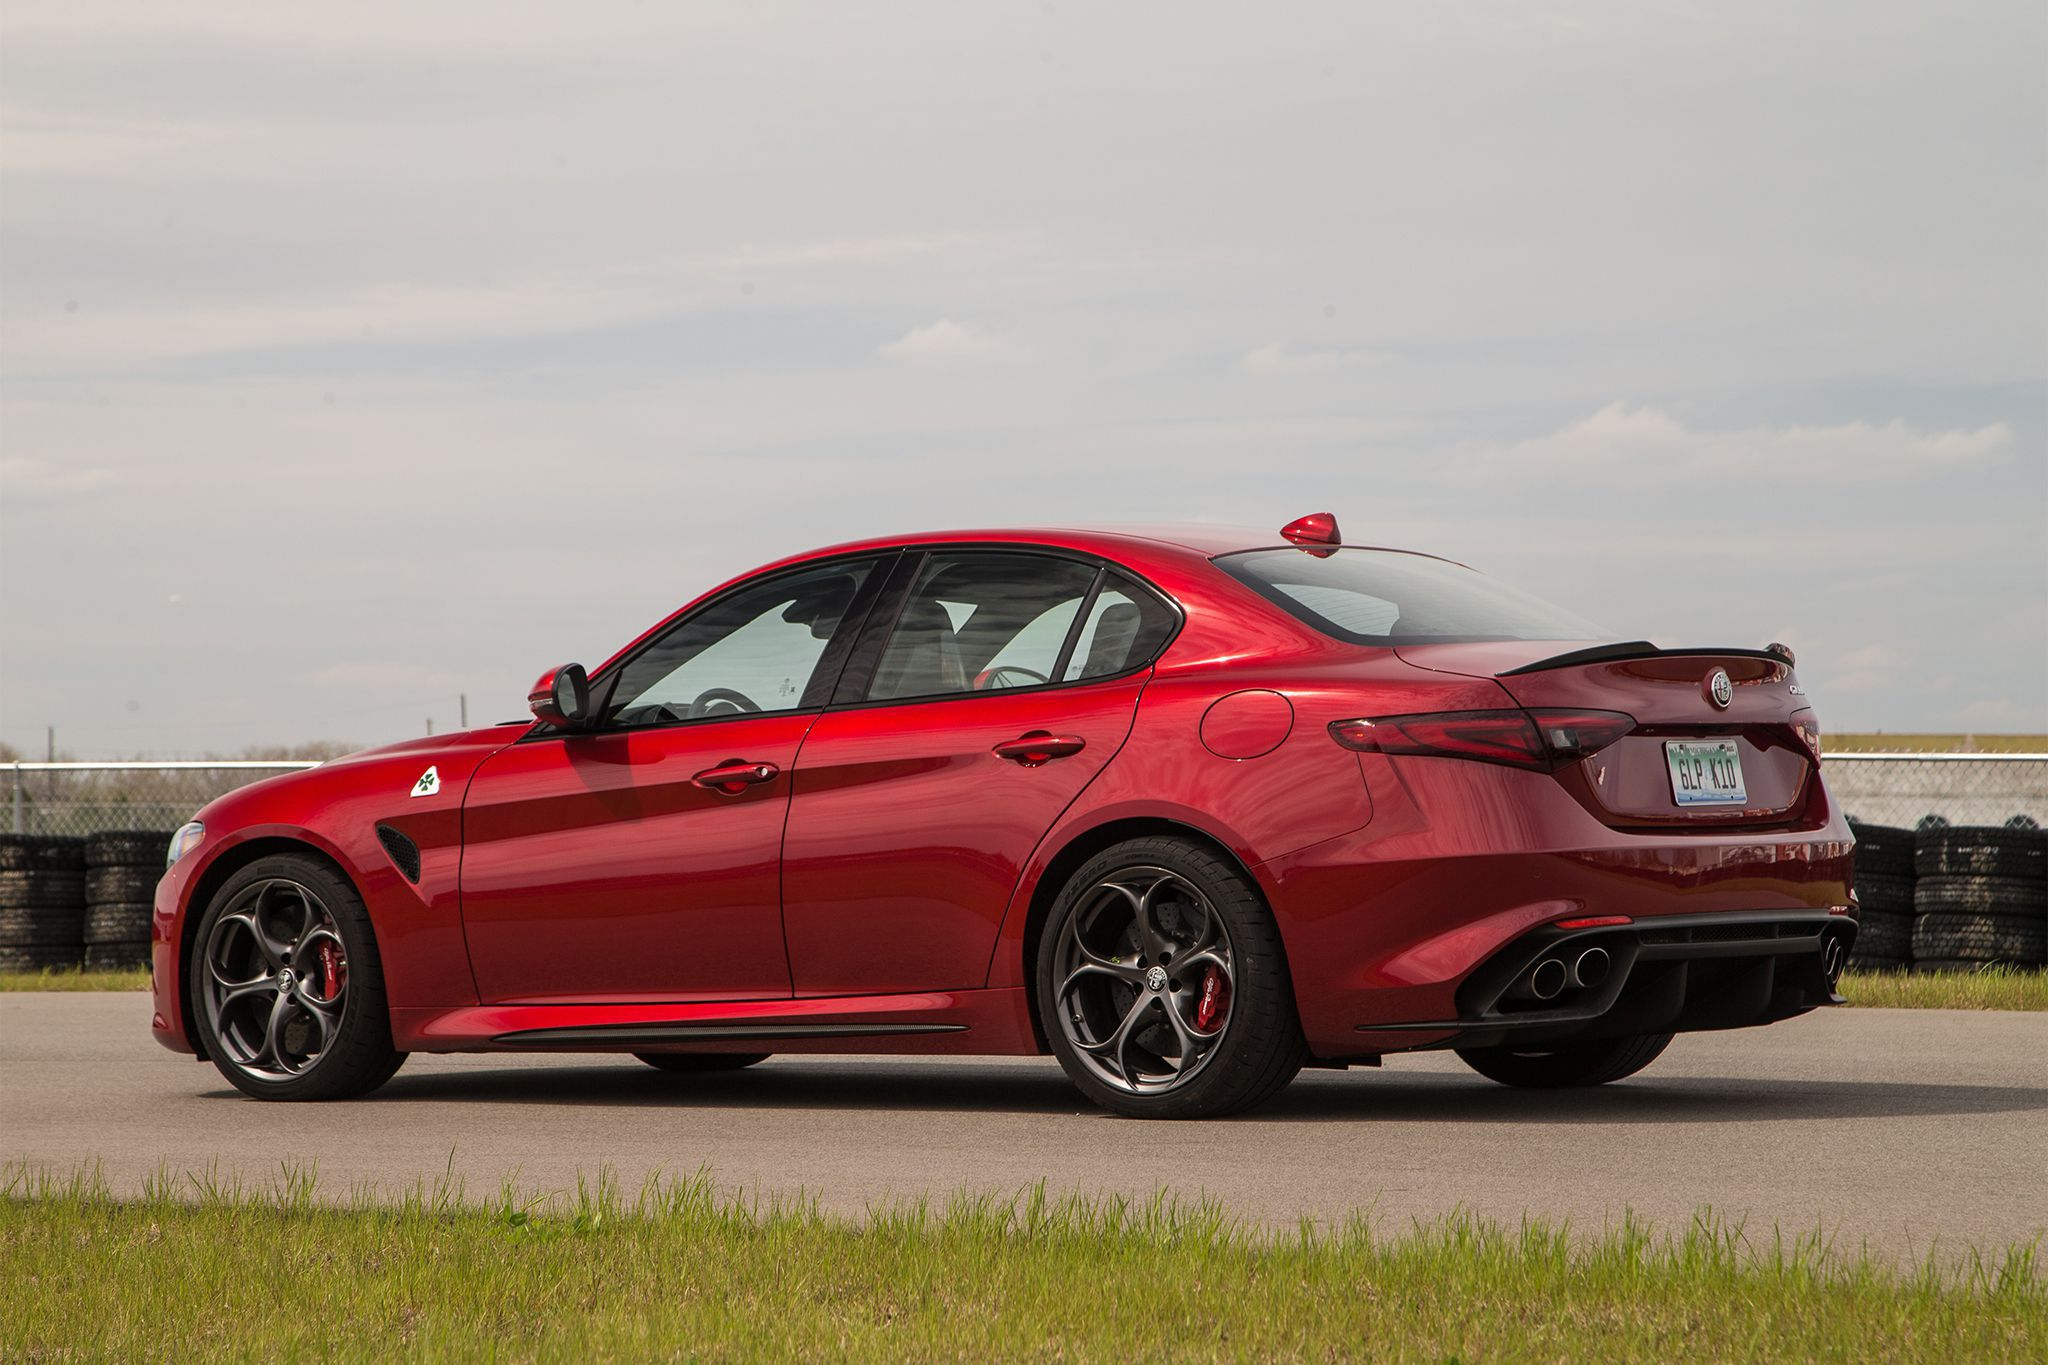 Alfa Romeo Giulia Wallpaper Pack